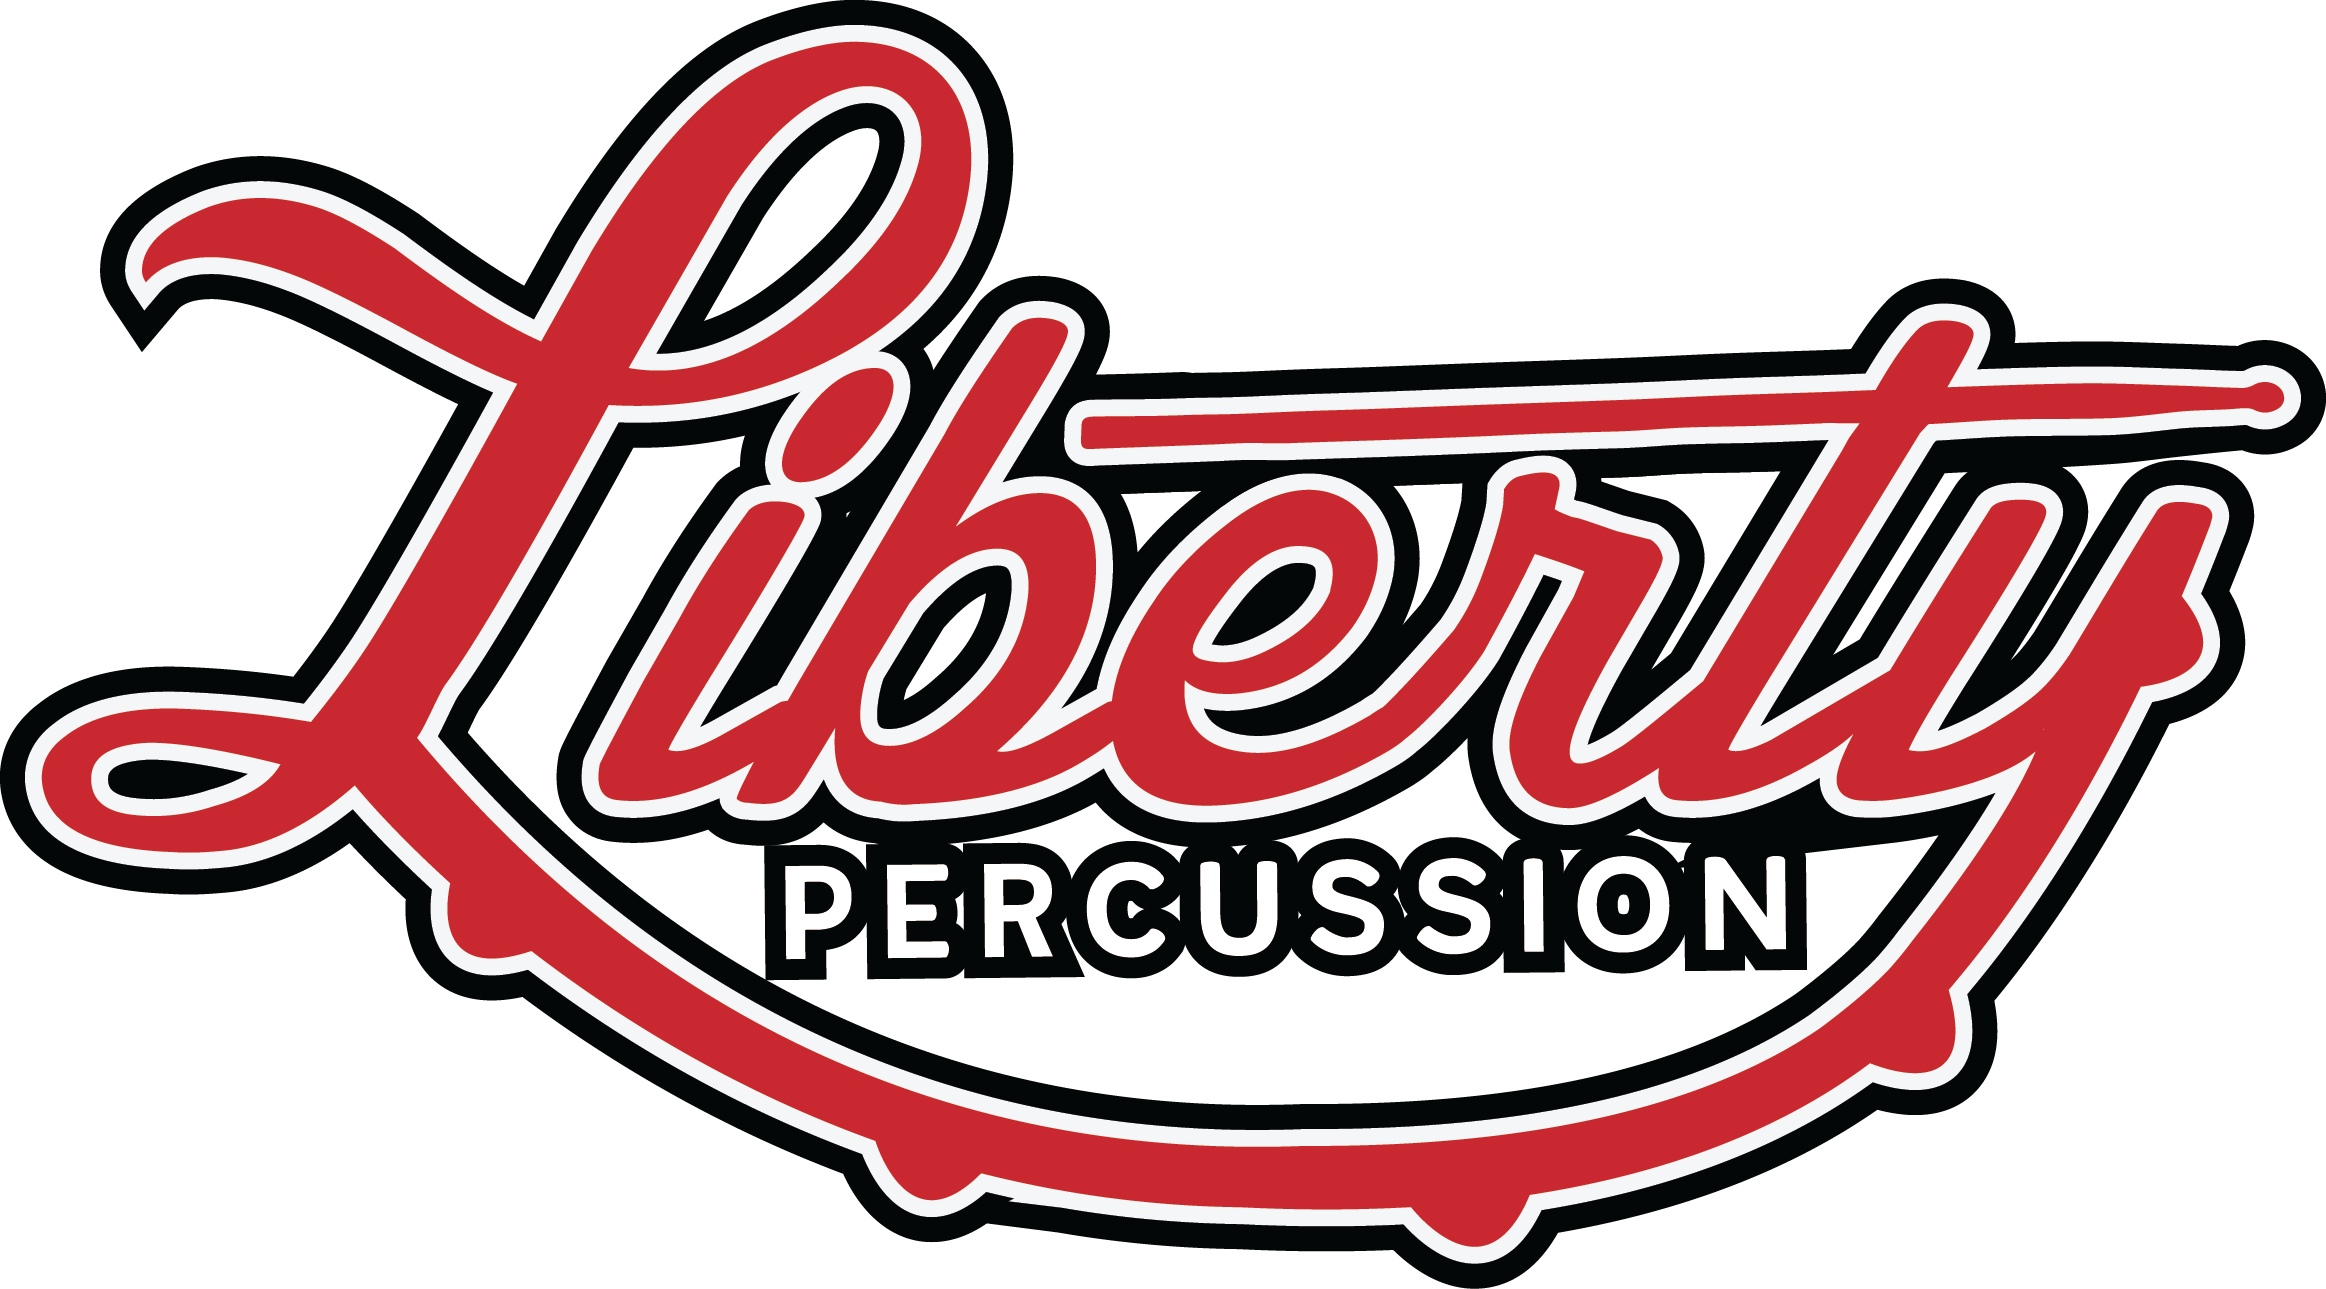 Percussion logo.png